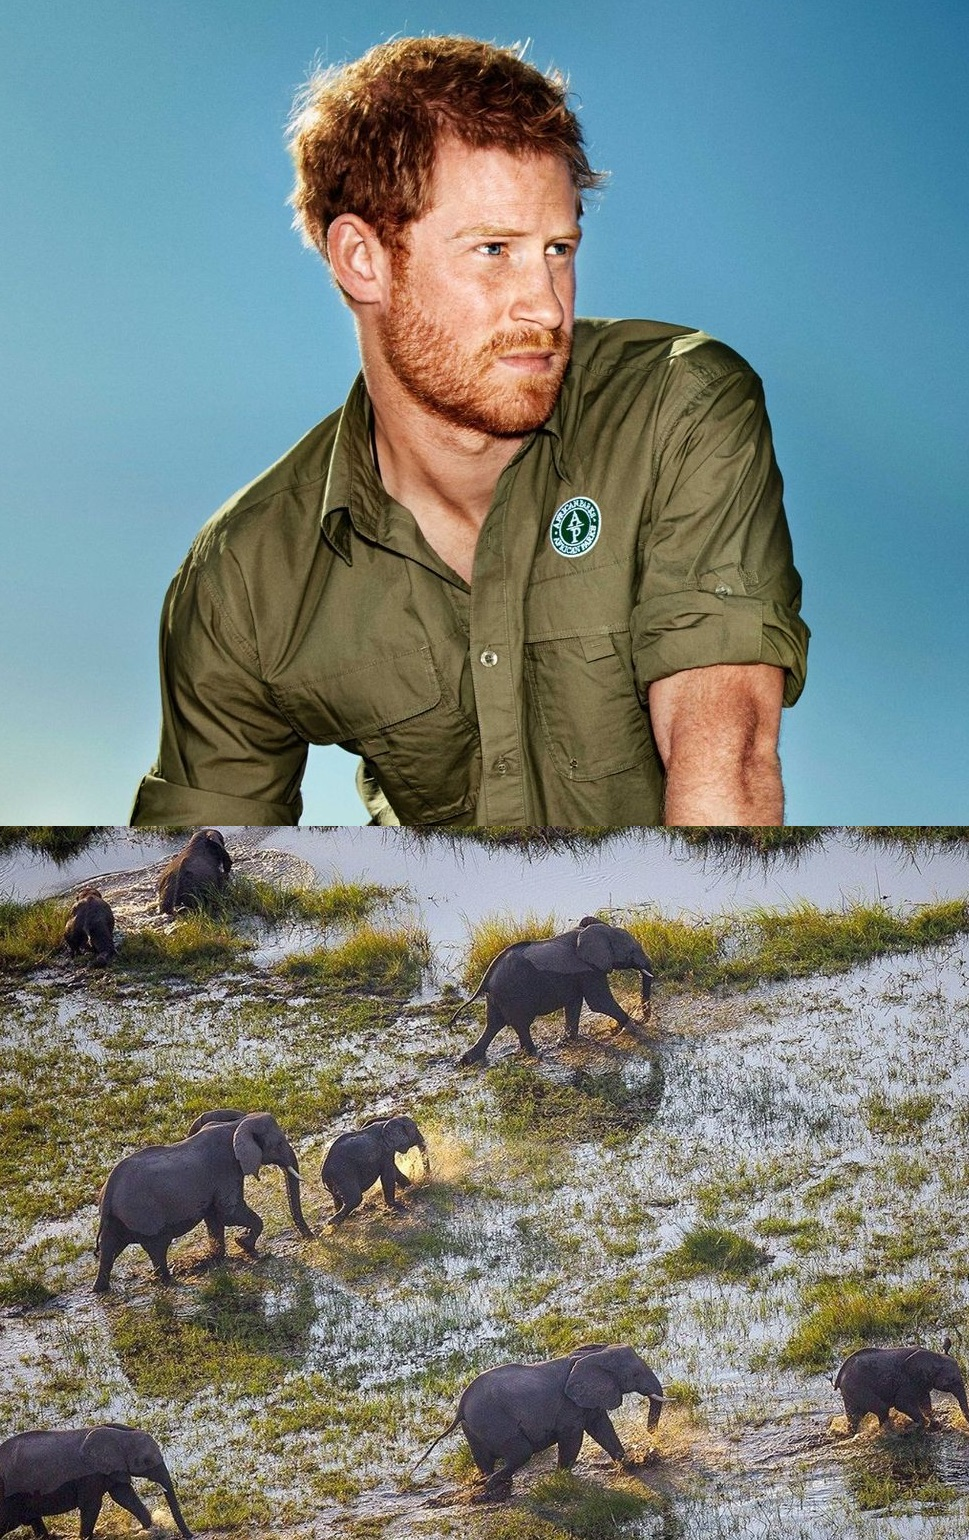 Prince+Harry+by+Alexi+Hay+for+Town+&+Country+Okavango+Documentary.jpg